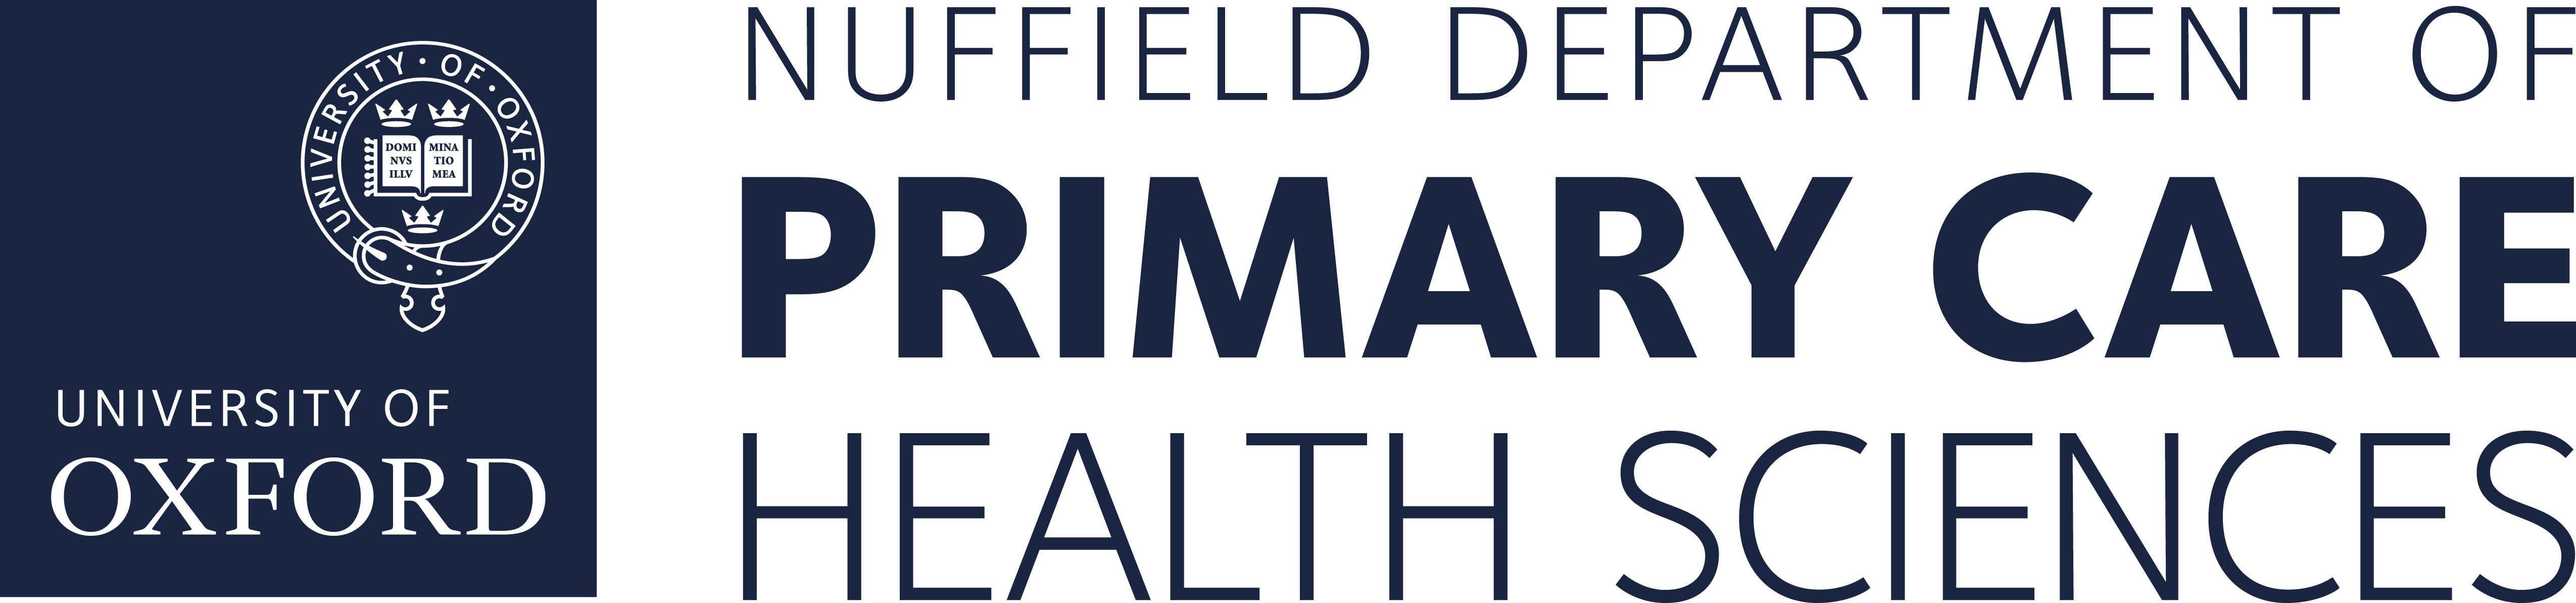 Oxford Nuffield Primary Care LOGO